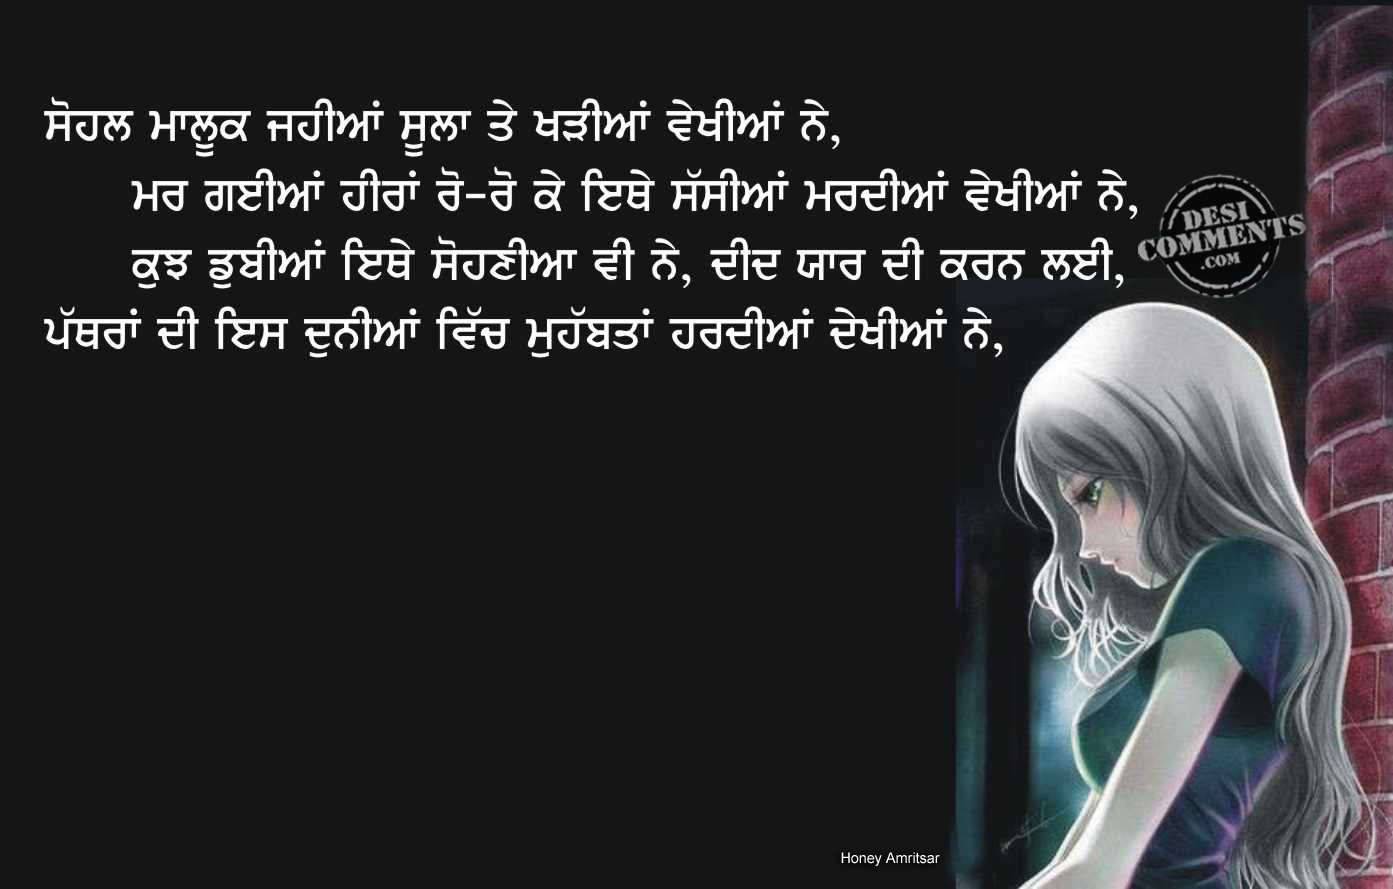 Love comments Wallpaper : Love (Sad) Punjabi Wallpapers - Page 7